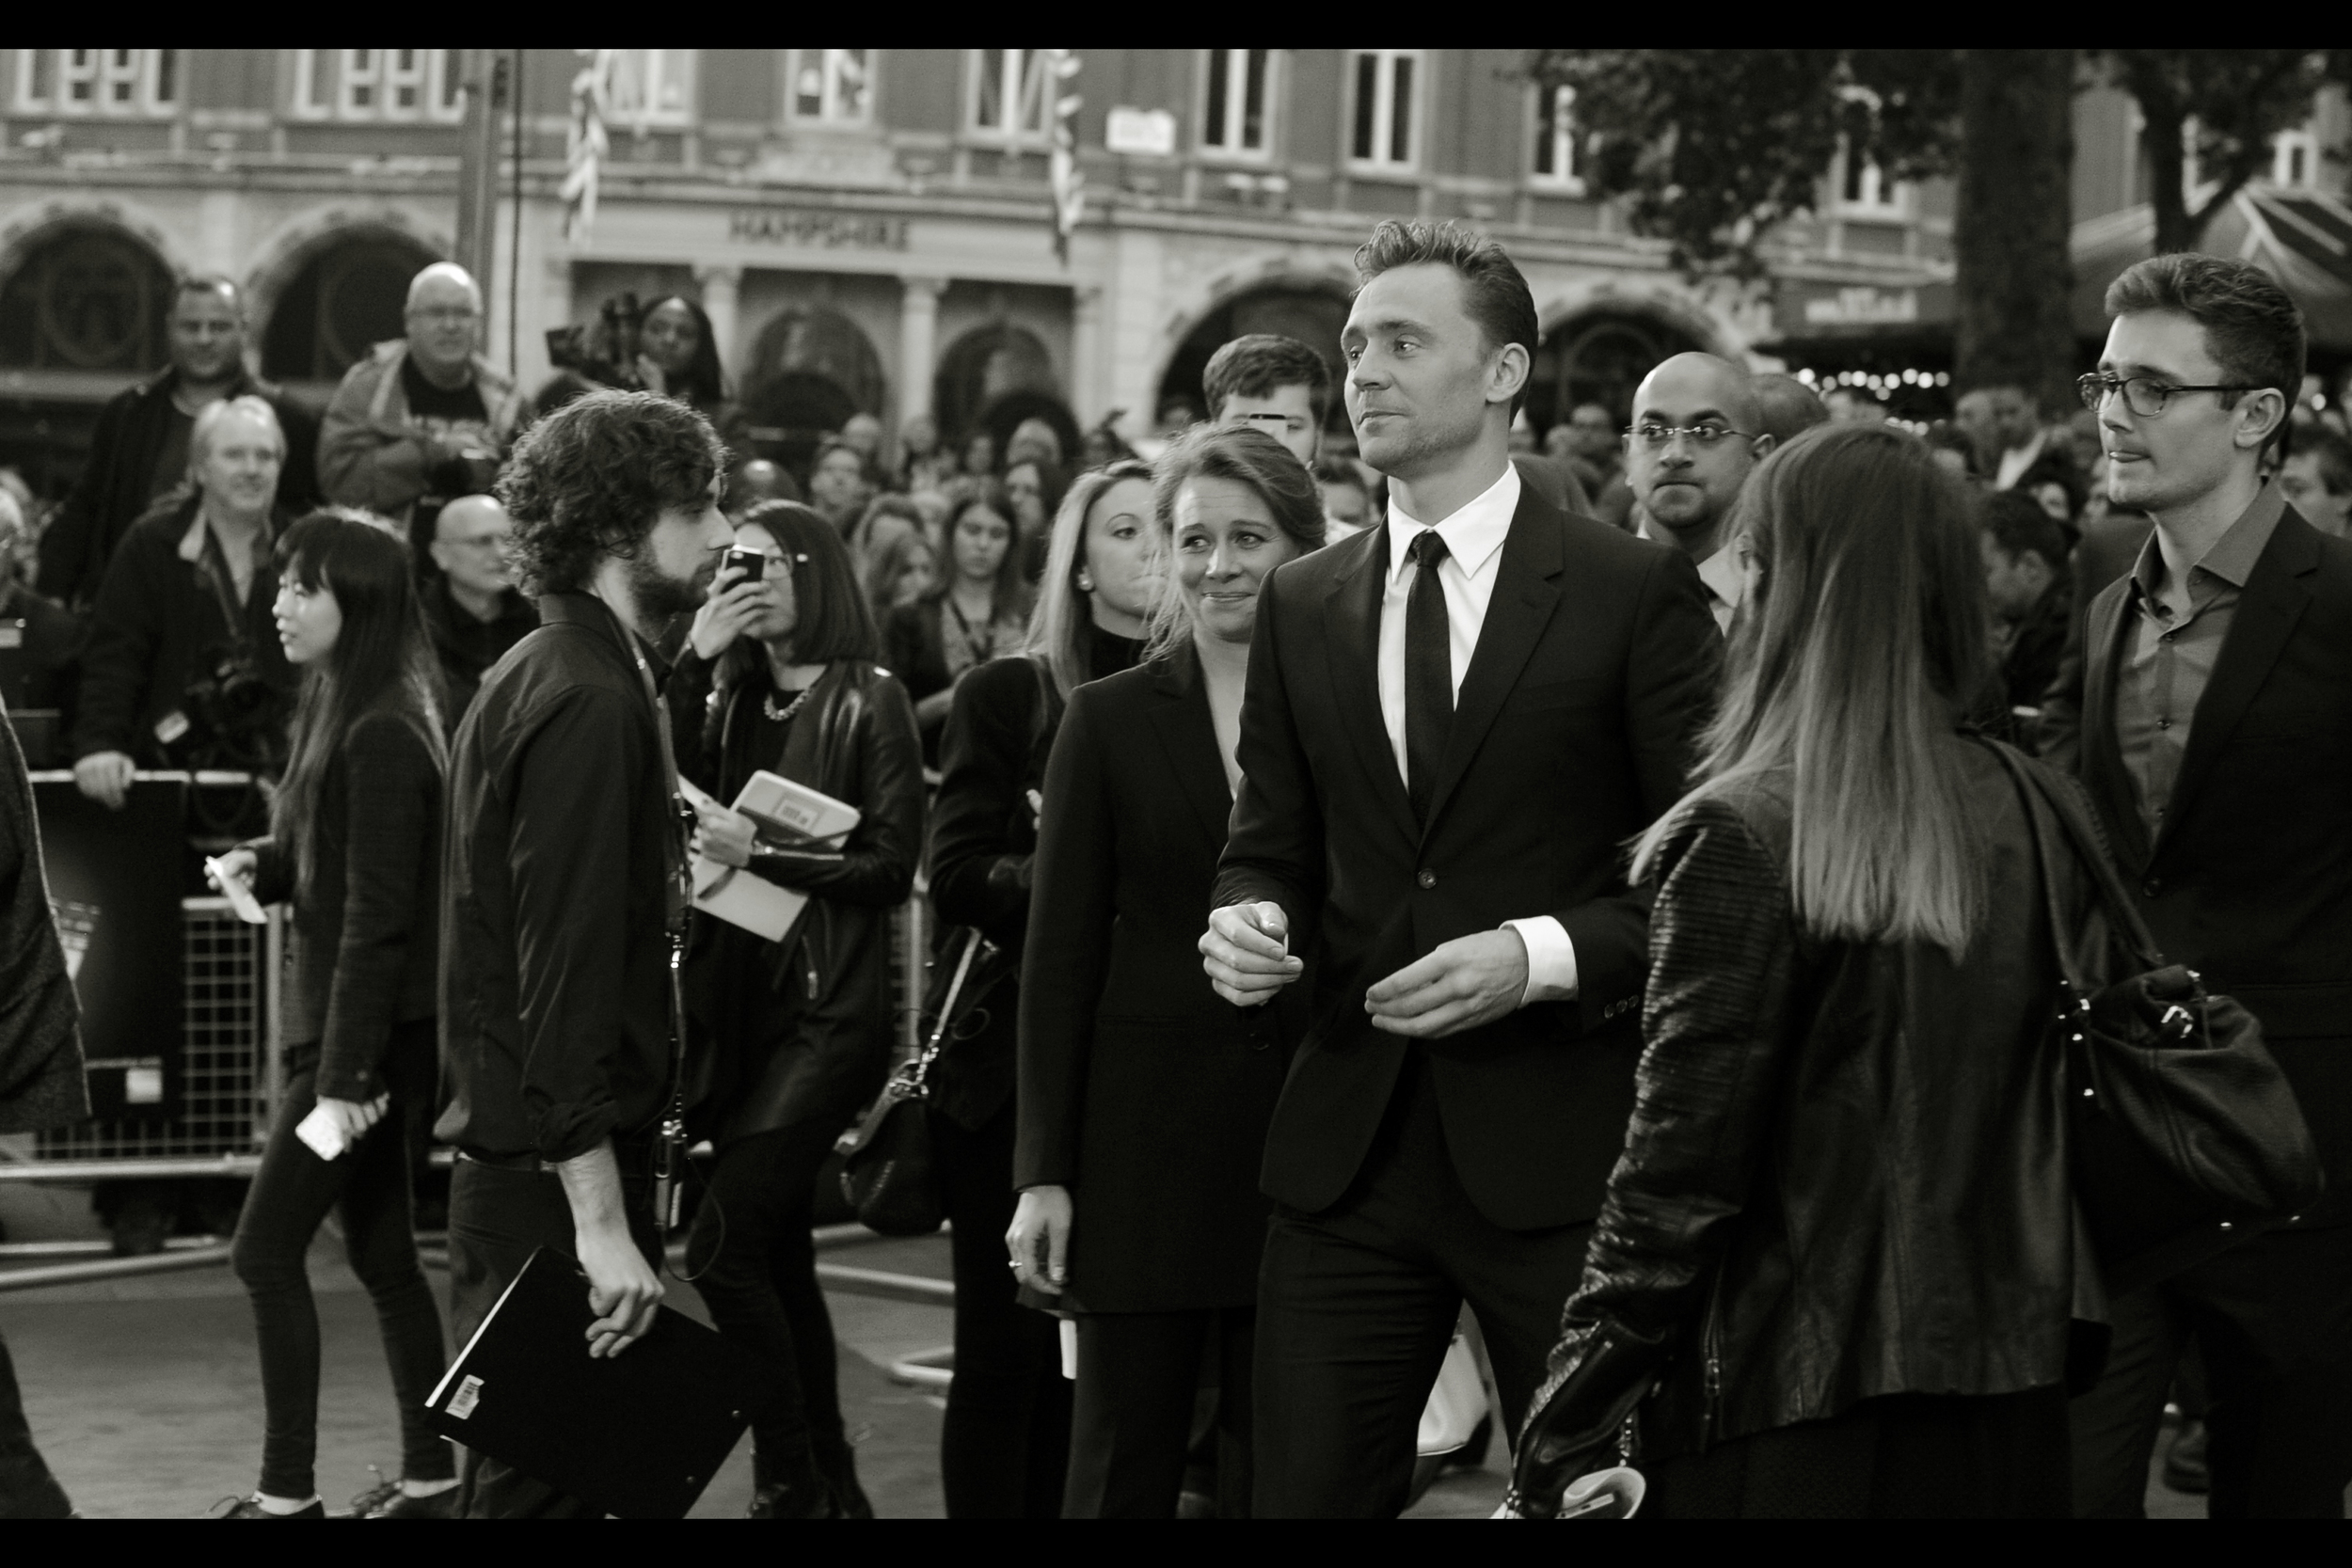 Well... it's finally happened. Tom Hiddleston has arrived. The guy on the left wth the clipboard is obviously immune to the wave of estrogen hanging above the crowd....